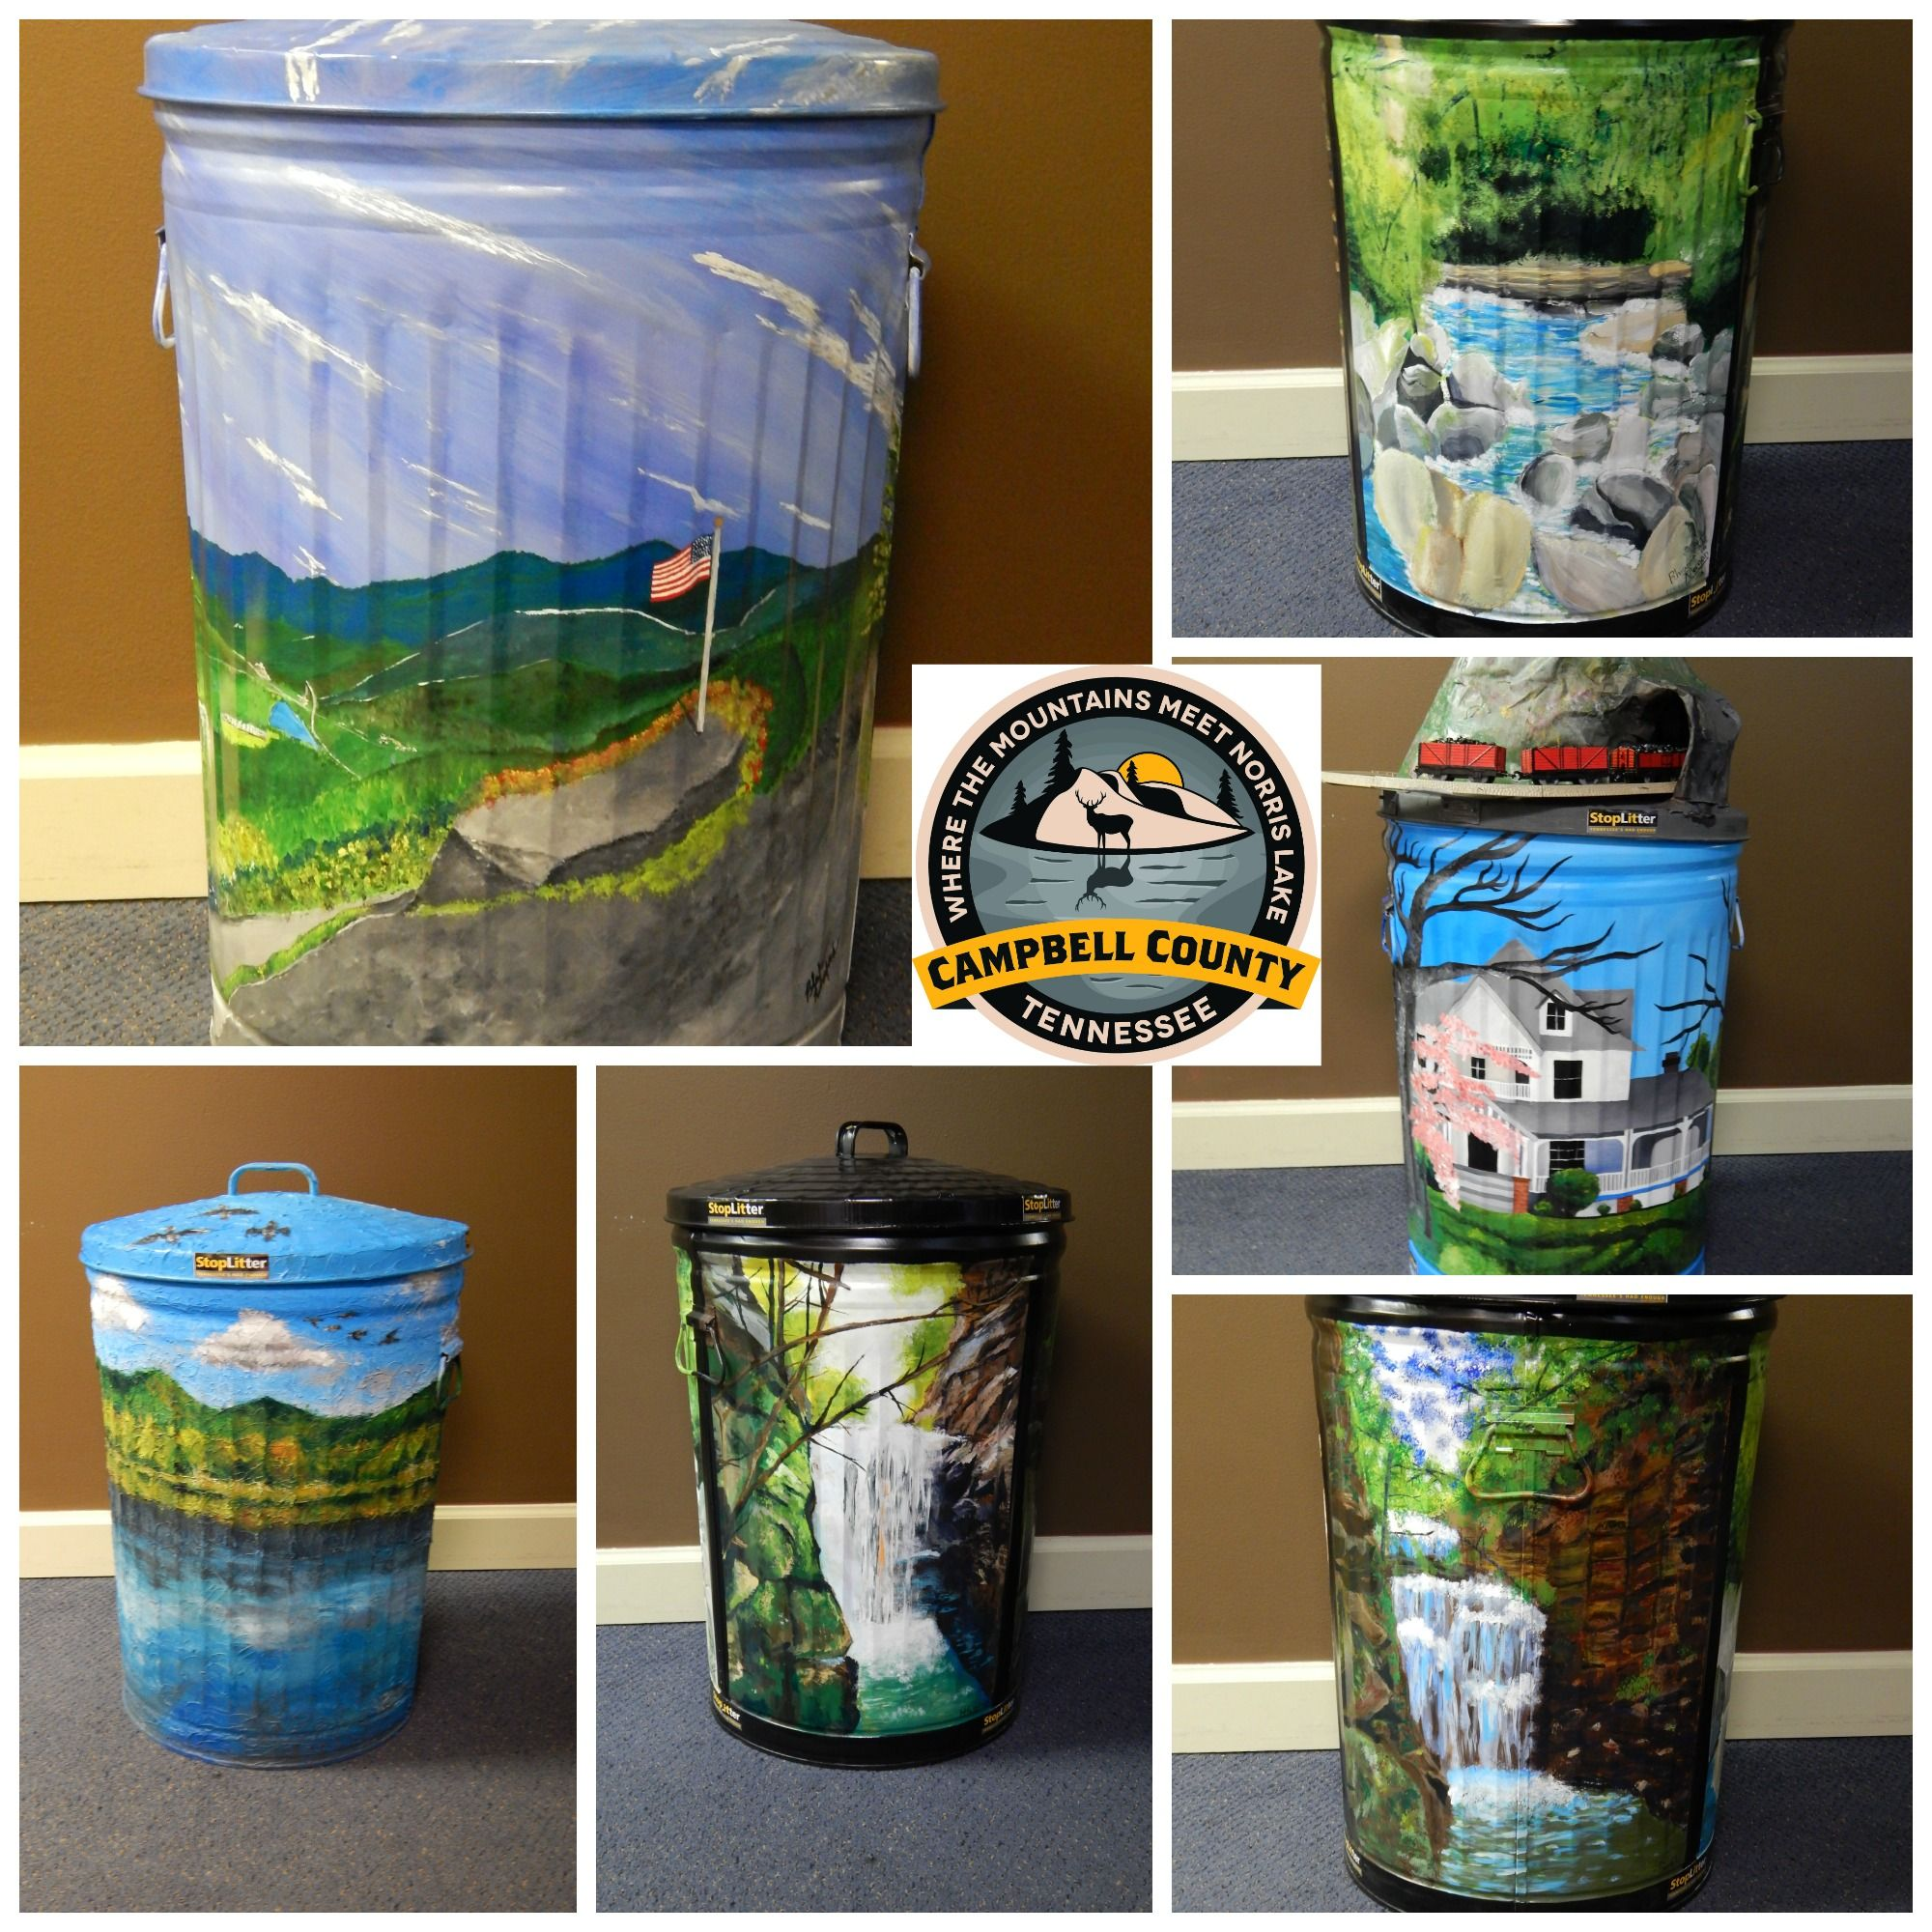 Online Only Auction on artistic trash cans, being sold to promote litter awareness in Campbell Co, Tn. and proceeds benefit Campbell Co. and Jellico High School art departments.  Ayers Auction and Real Estate, LaFollette, Tn. Lic#407. no bp